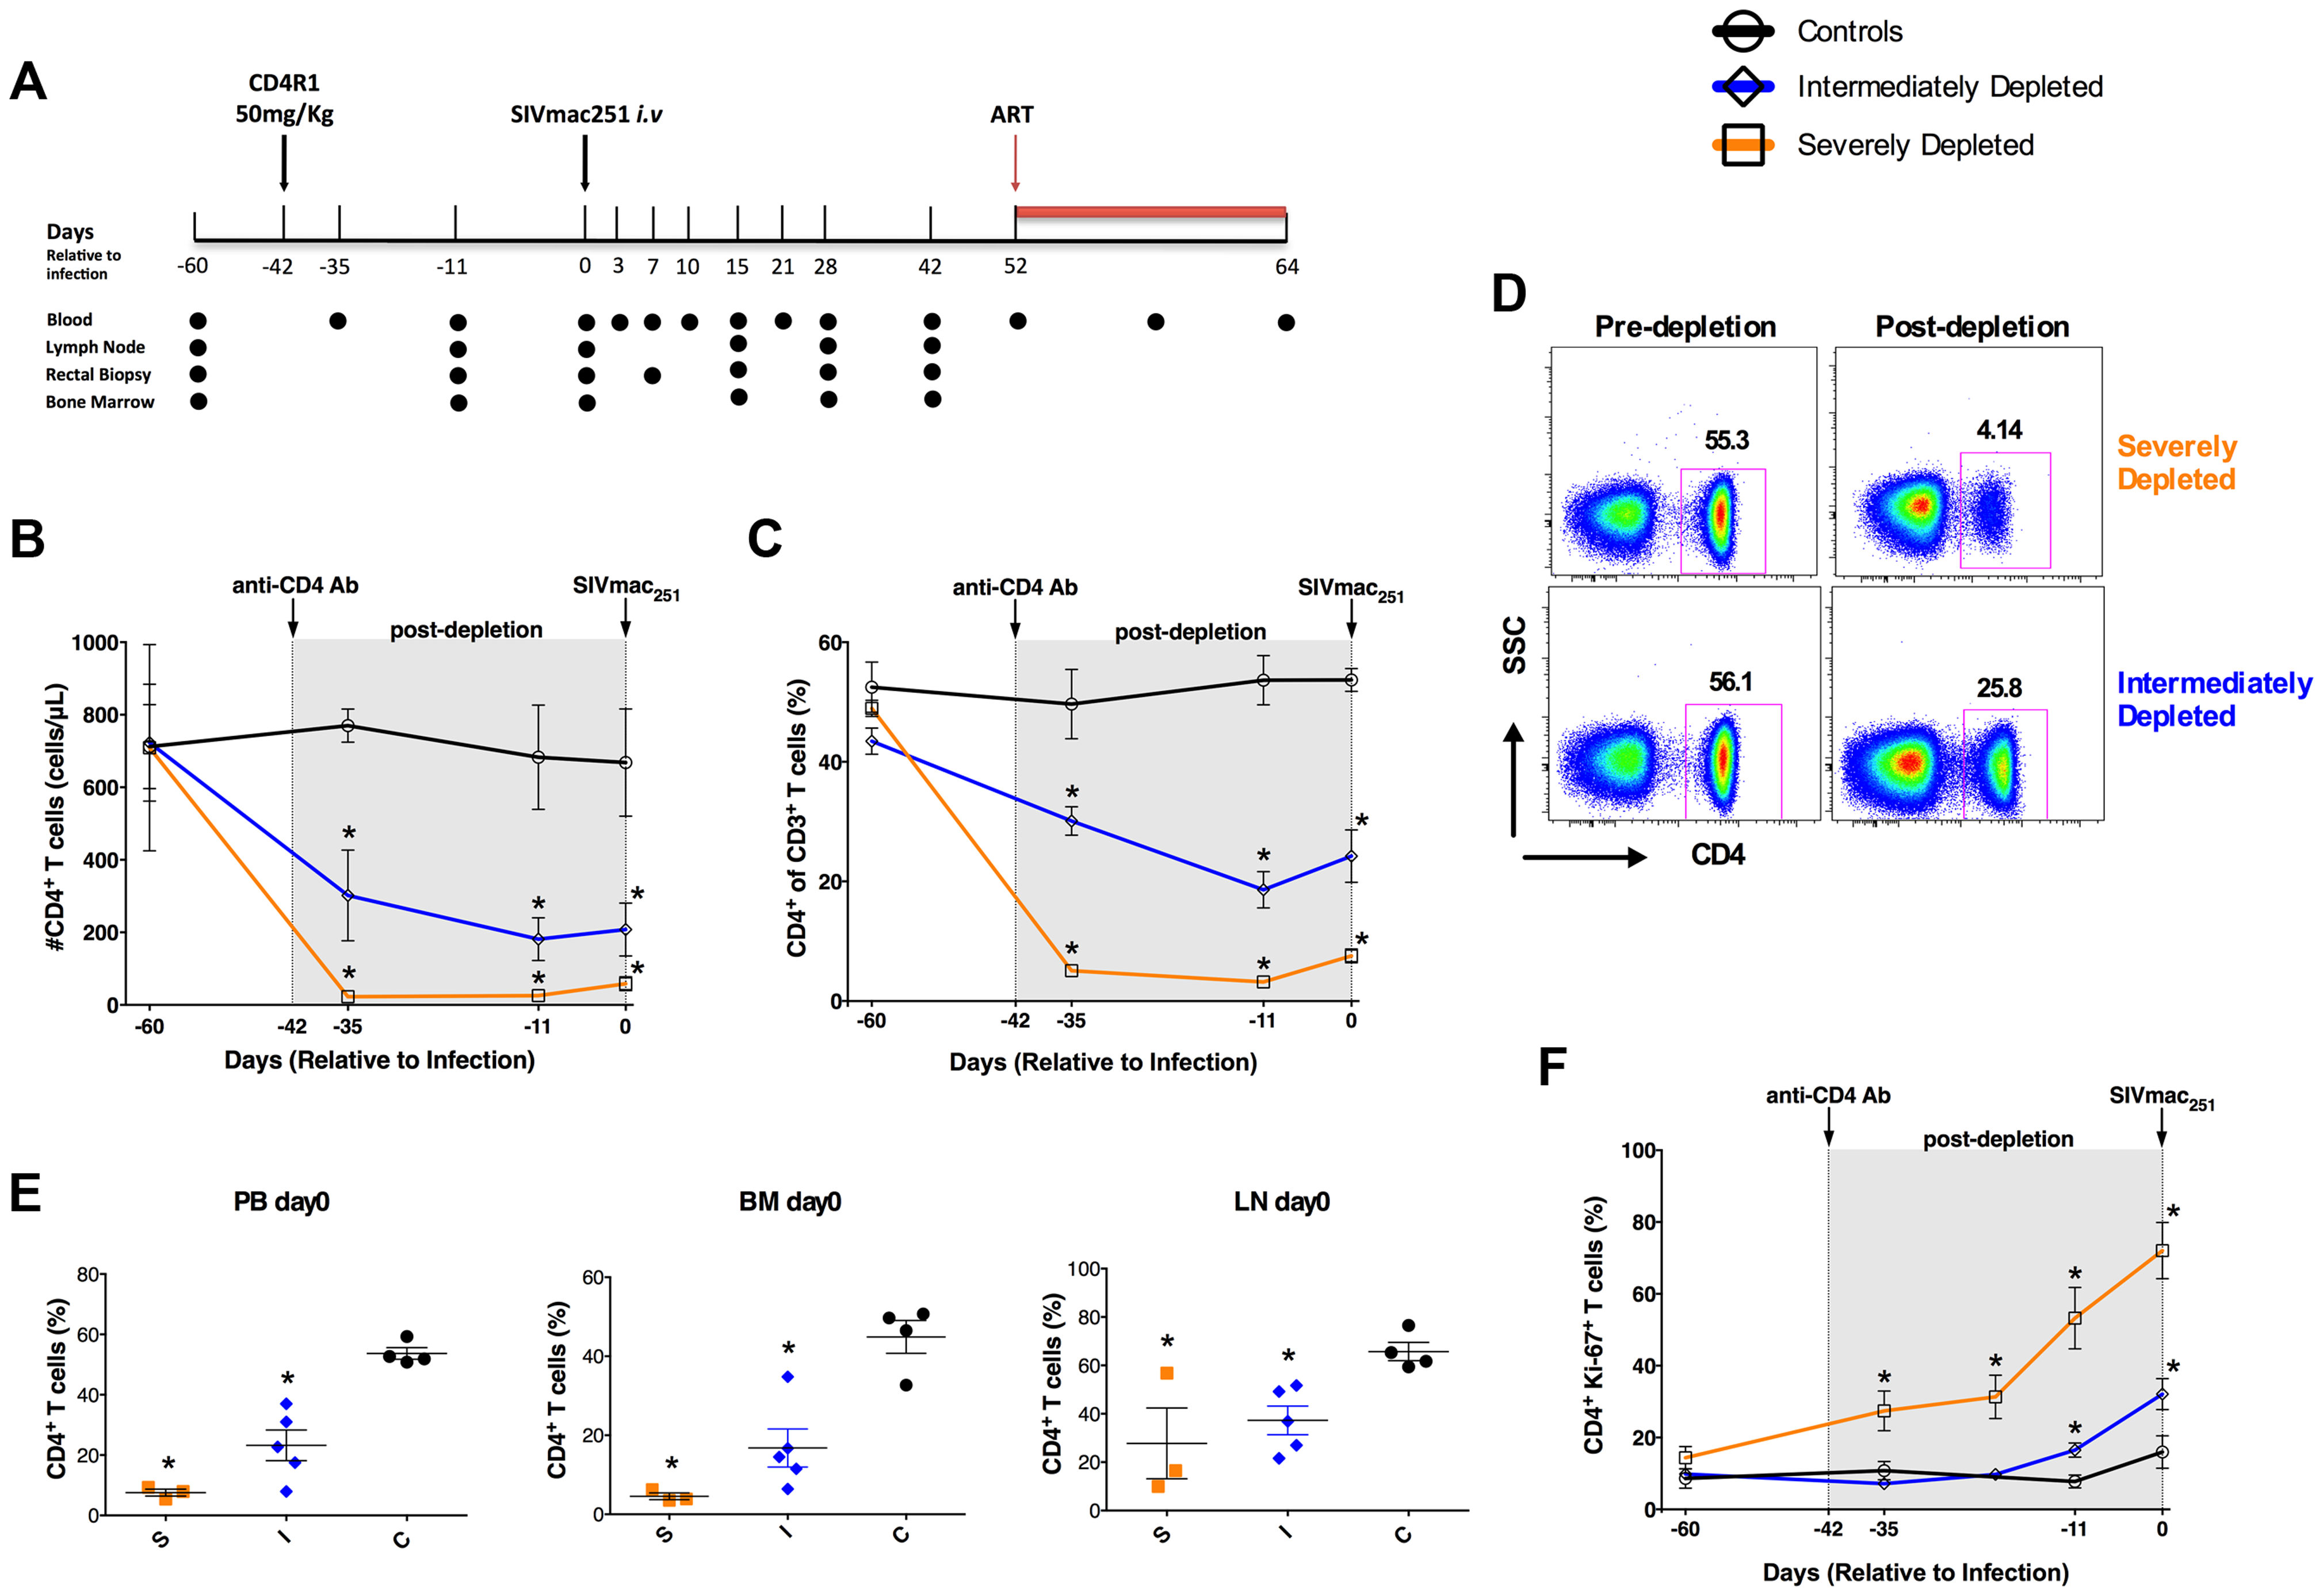 Study design and extent of CD4<sup>+</sup> T-cell depletion induced by CD4R1.